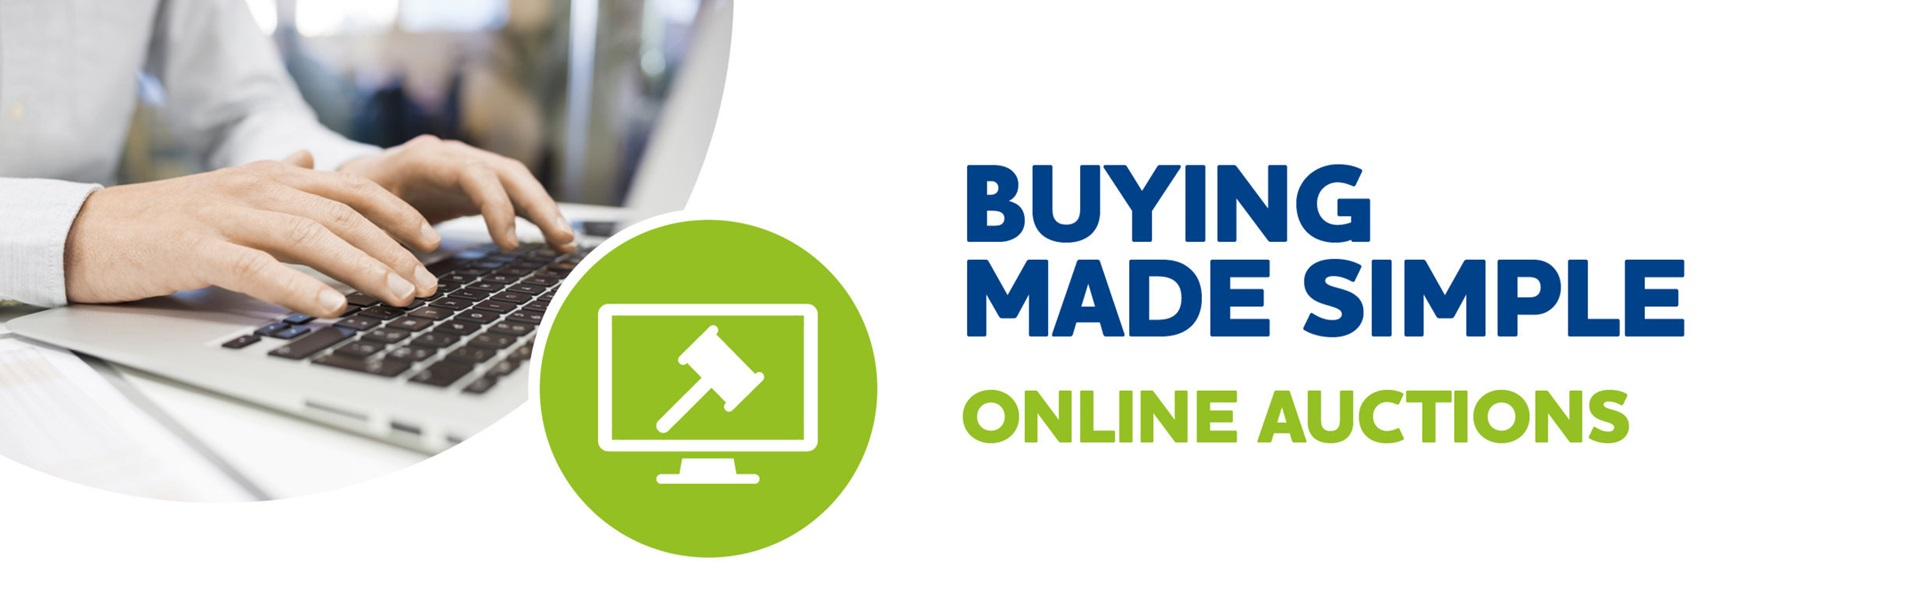 It's simple to bid and buy with Online Auctions at Manheim